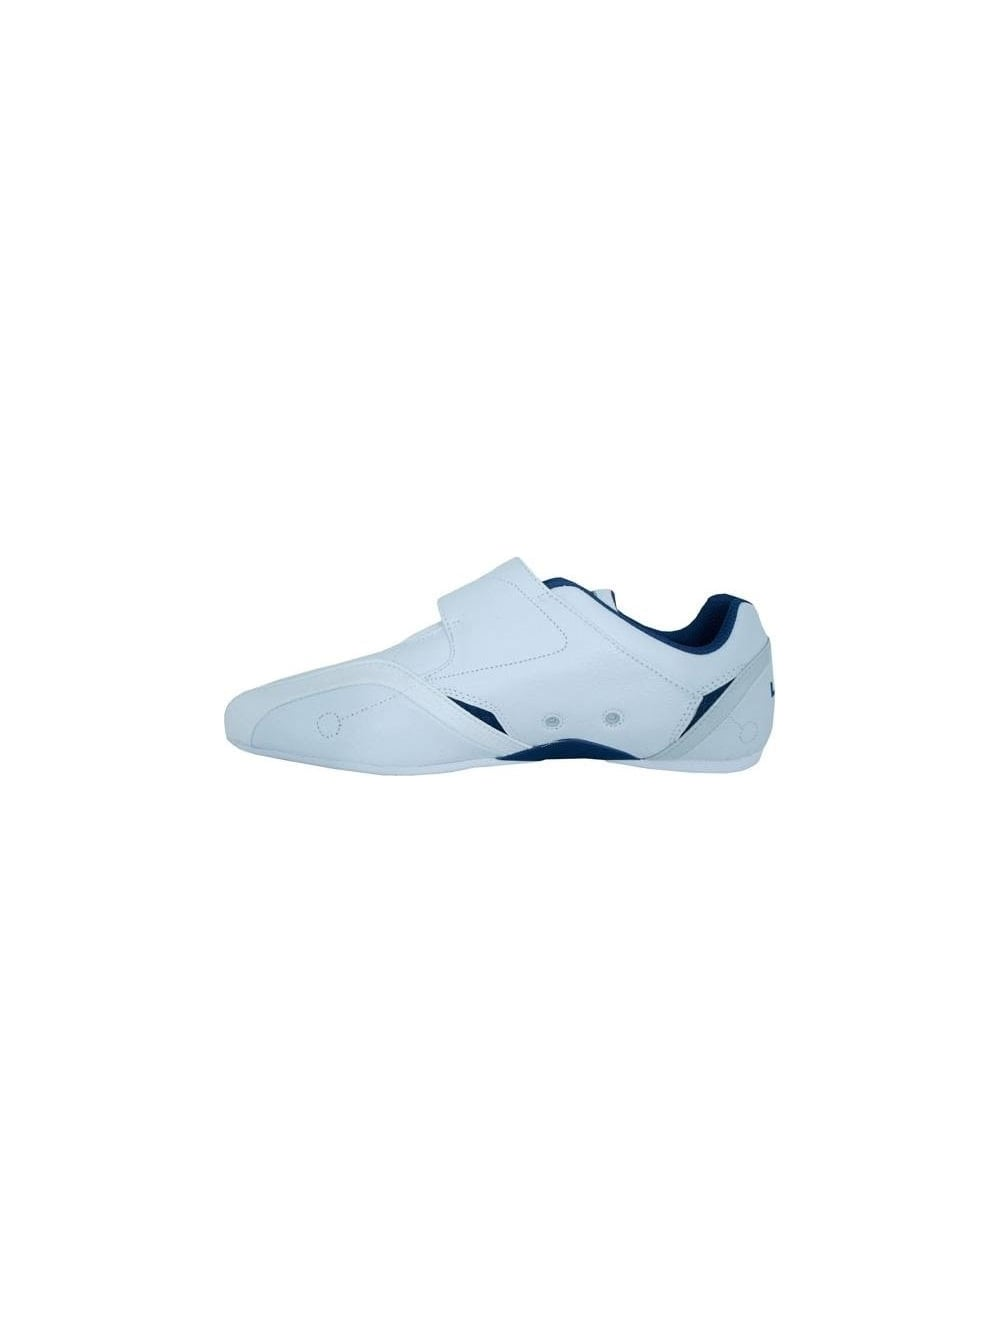 purchase cheap ea0c3 5a388 Protect RT SPM Trainer - White  Blue